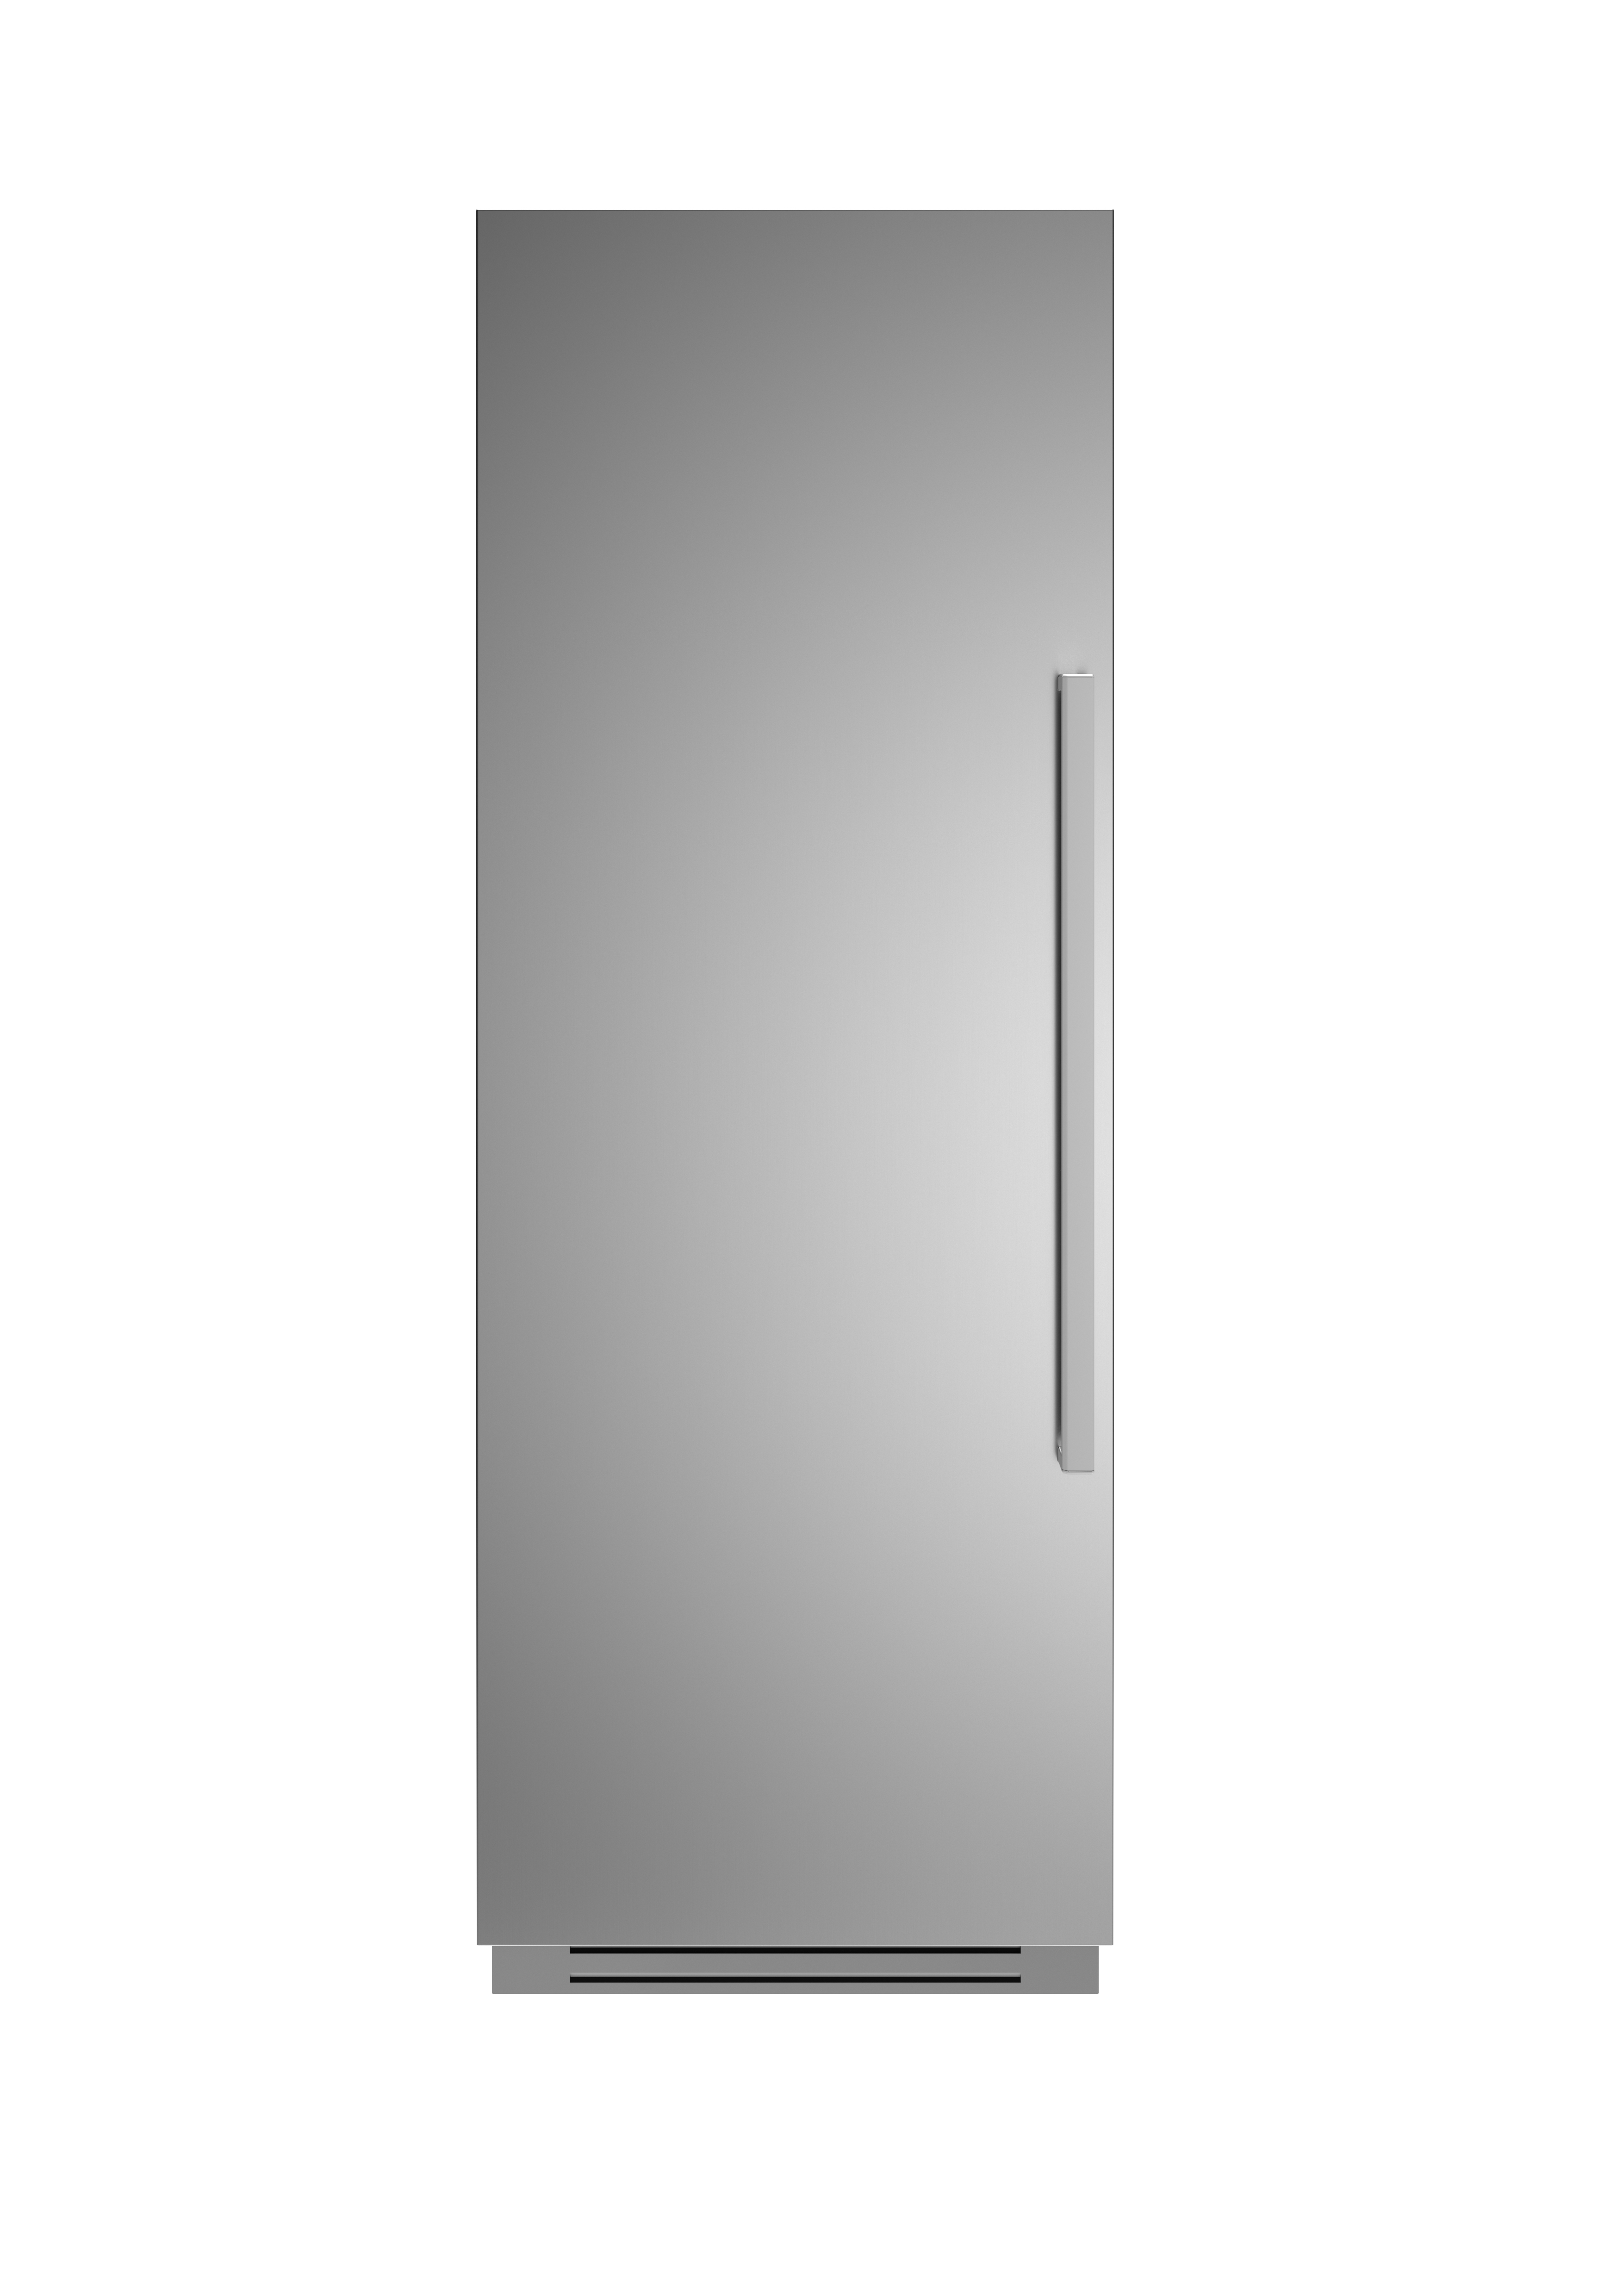 Bertazzoni Fridge REF30RCPIXL in Stainless Steel color showcased by Corbeil Electro Store